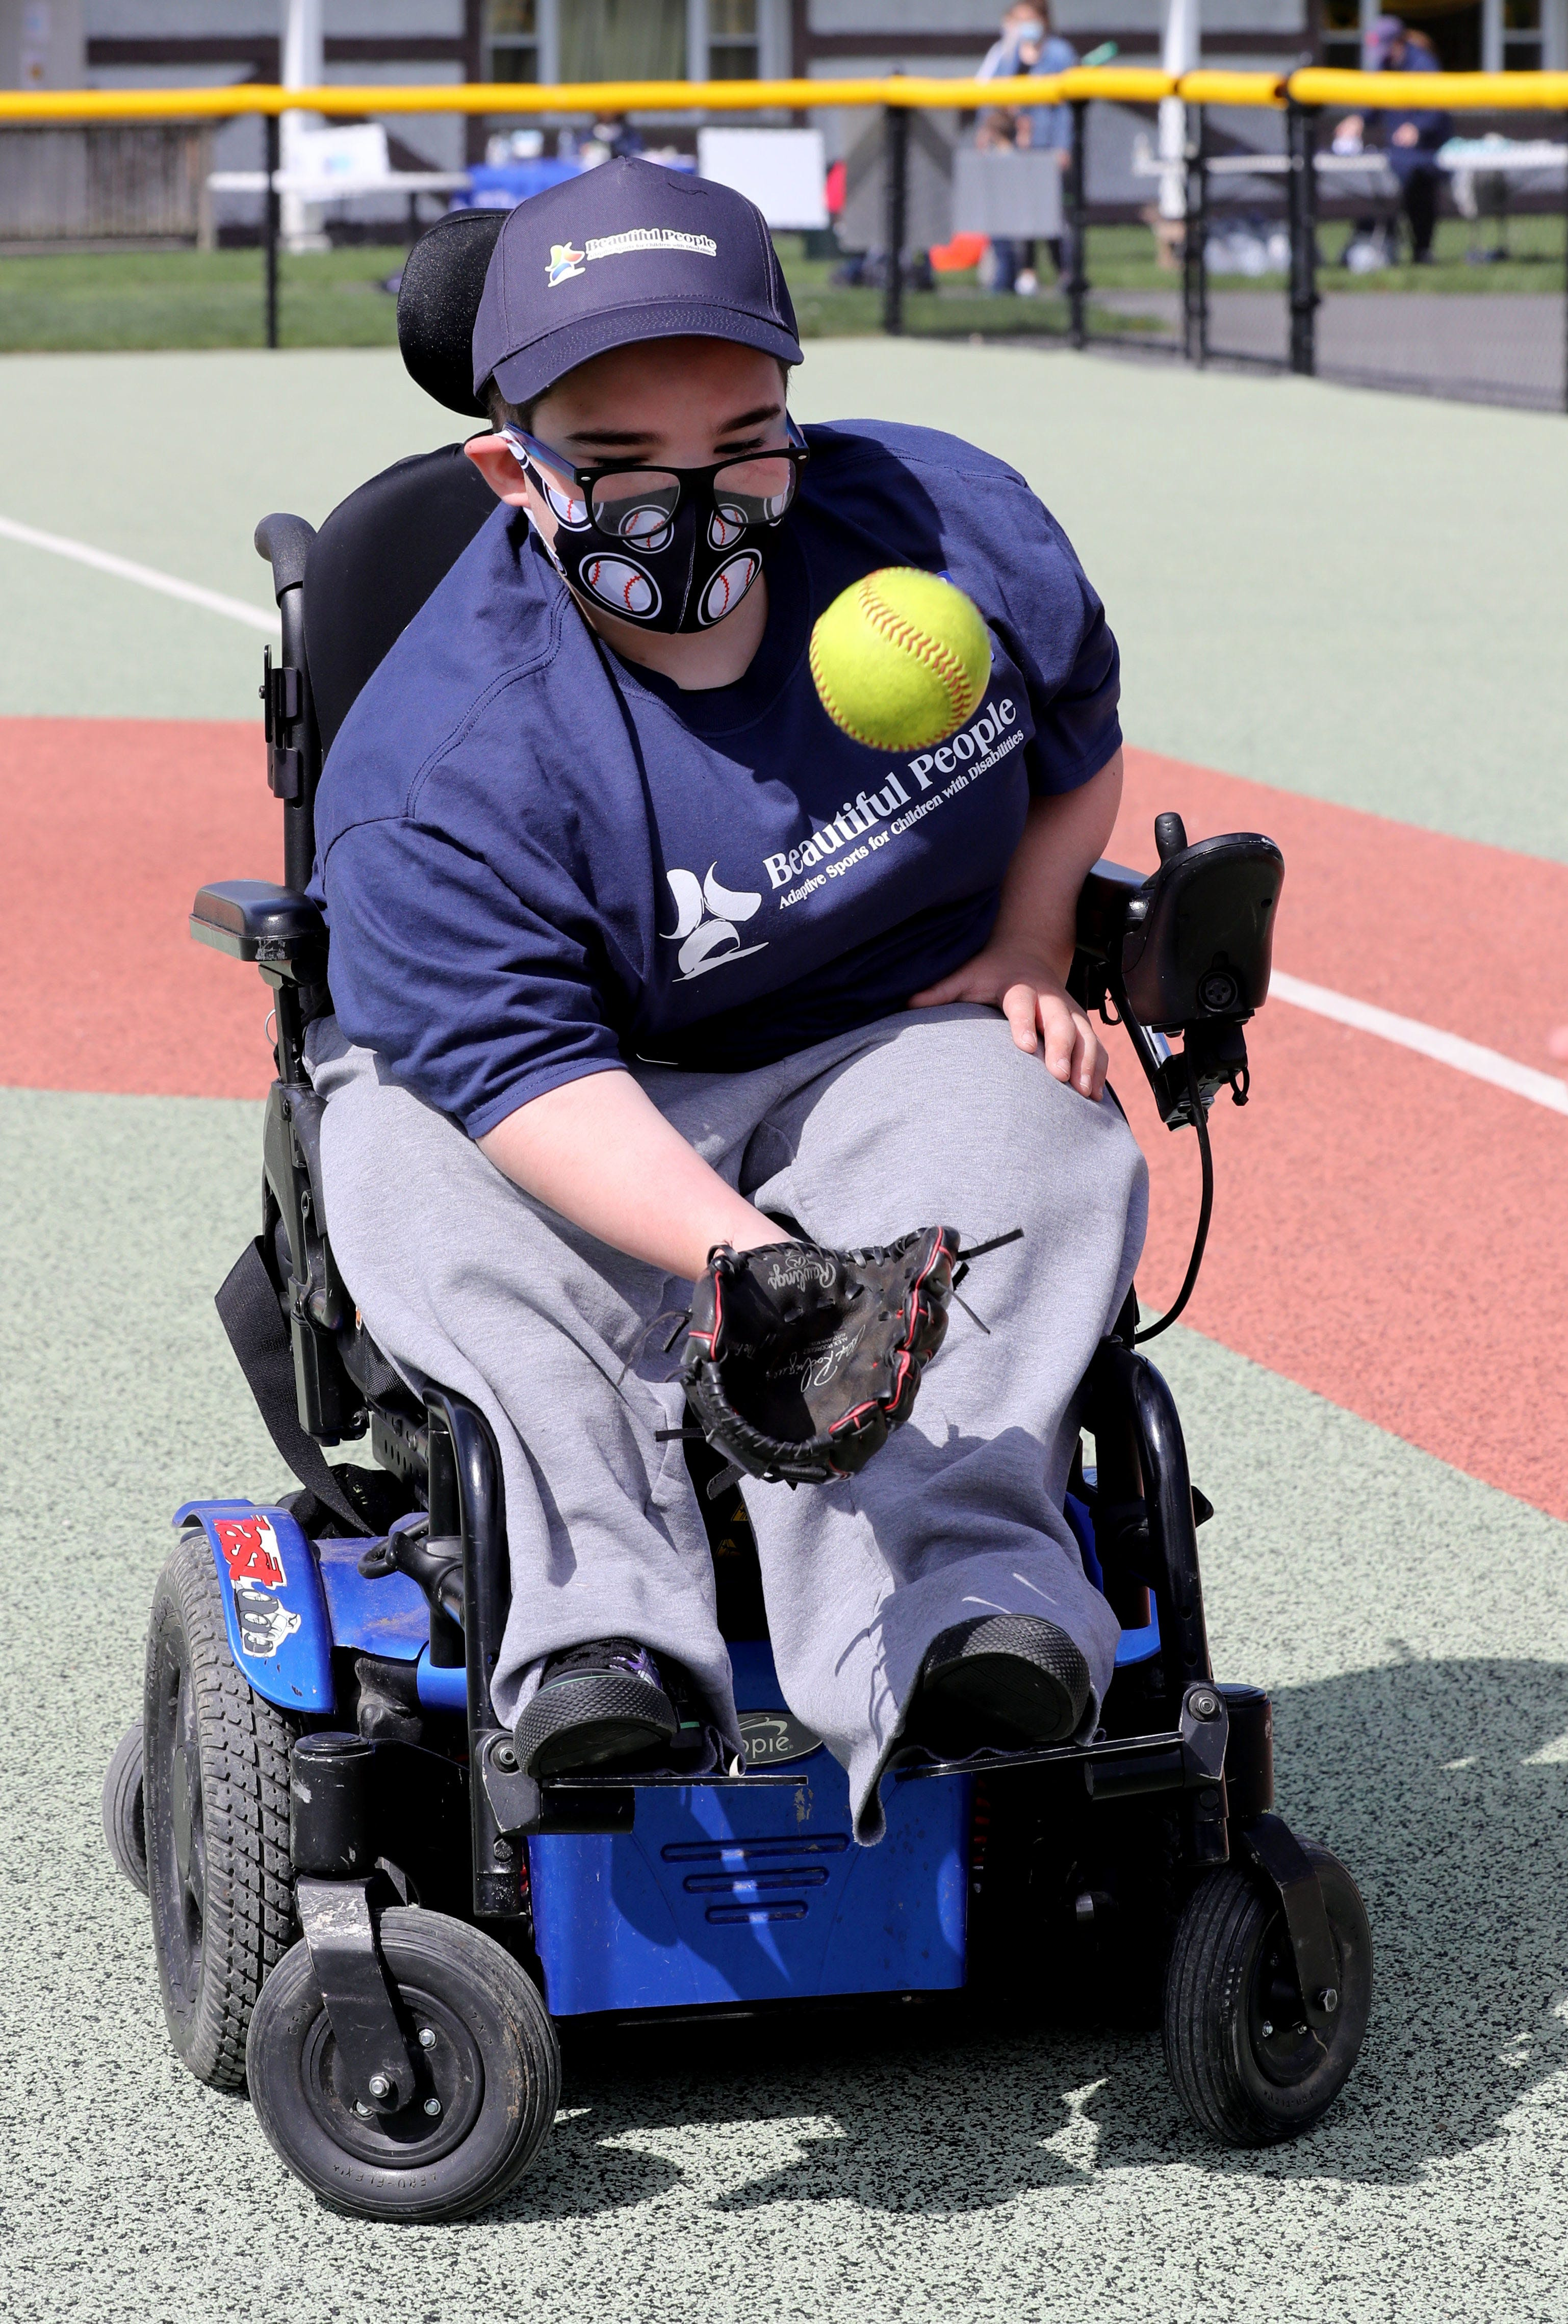 Kenny Grunenberg, 9, catches a ball during opening day for Beautiful People Baseball in Warwick, N.Y. May 2, 2021. The baseball program is one of the sports offered by Beautiful People, which provided adaptive sports for children with disabilities.